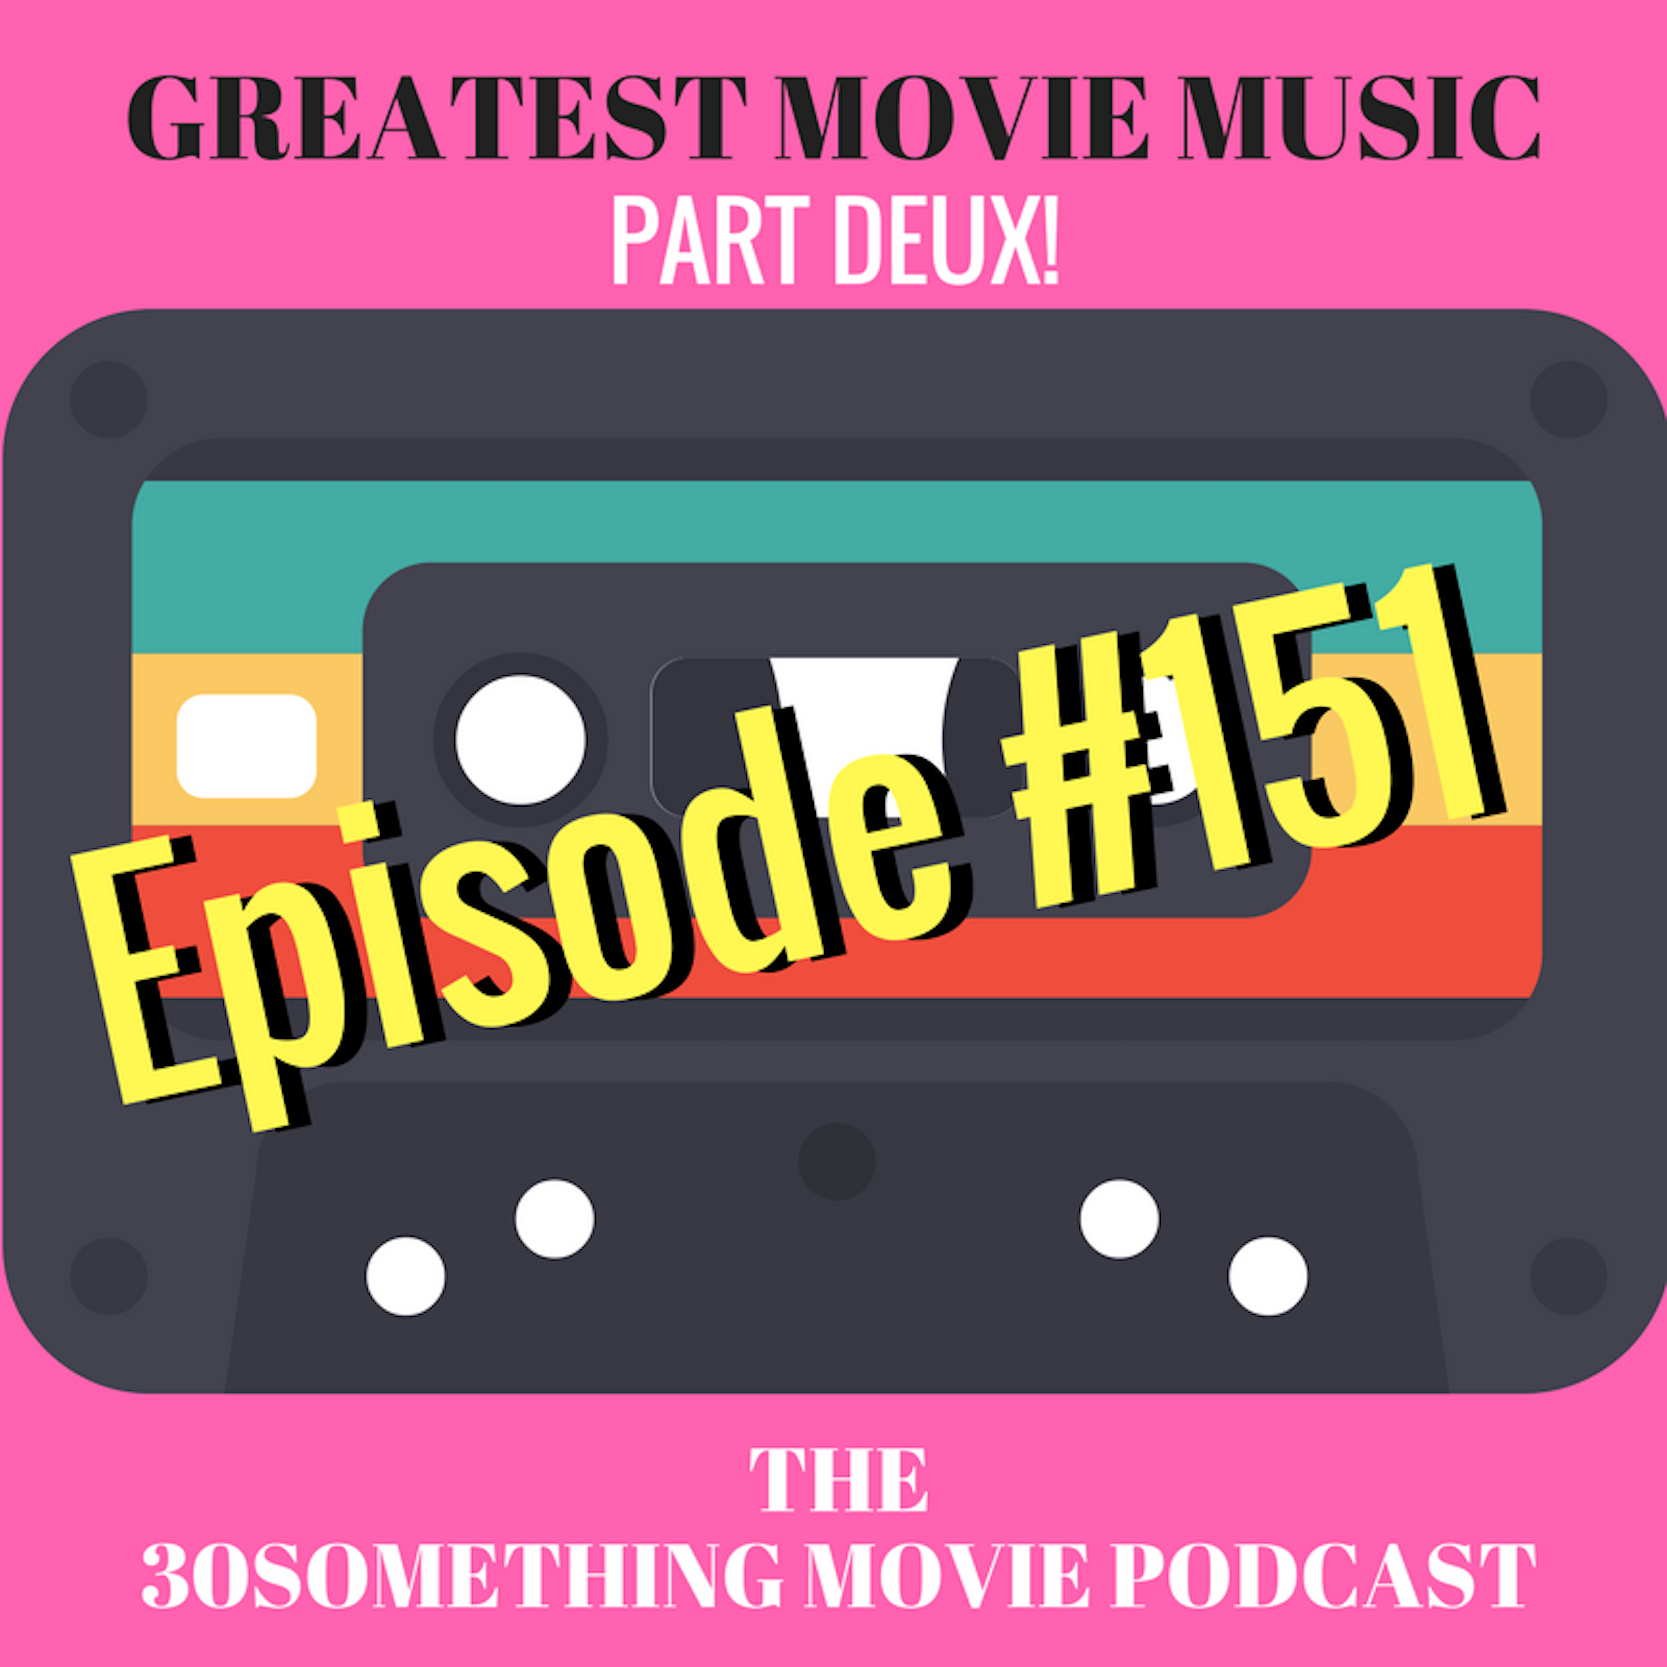 Episode #151: Favorite Movie Music of All Time - Part Deux!